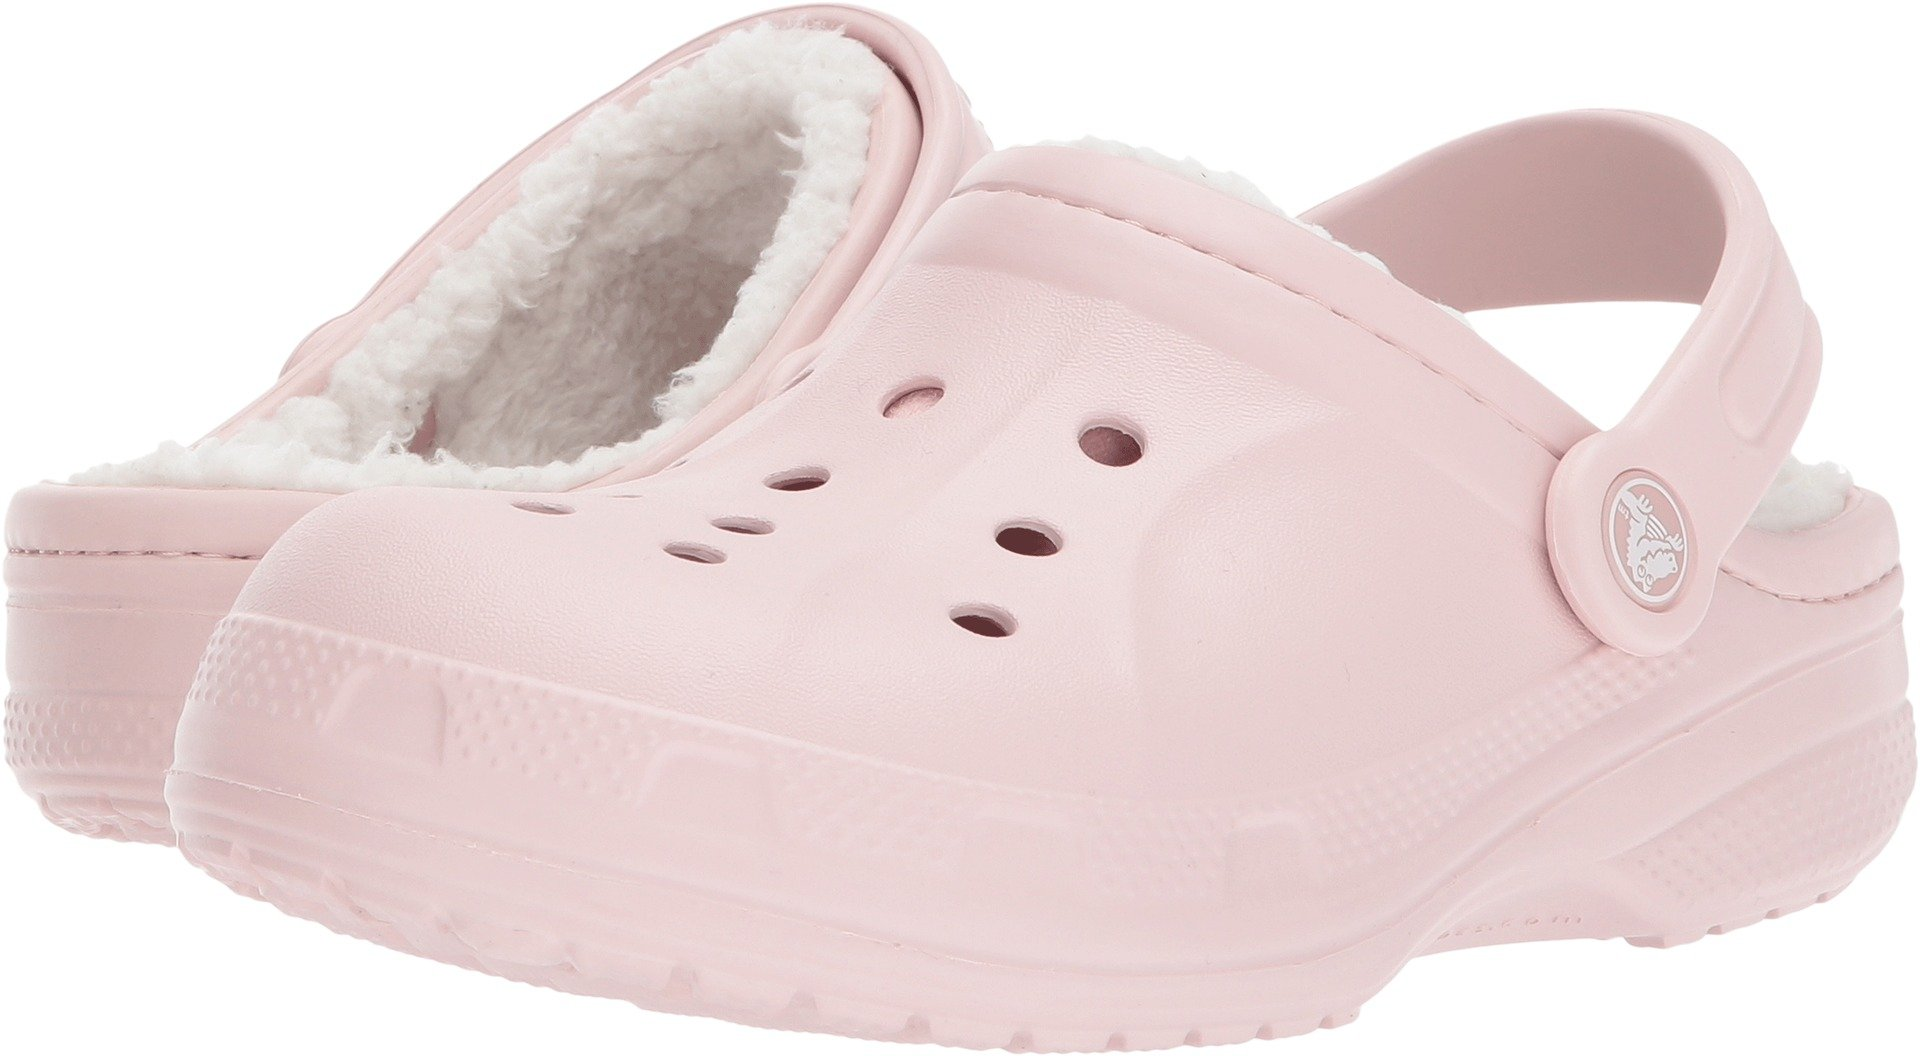 Crocs Kids Unisex Ralen Lined Clog (Toddler/Little Kid) Cotton Candy/Oatmeal 10-11 M US Toddler/Little Kid